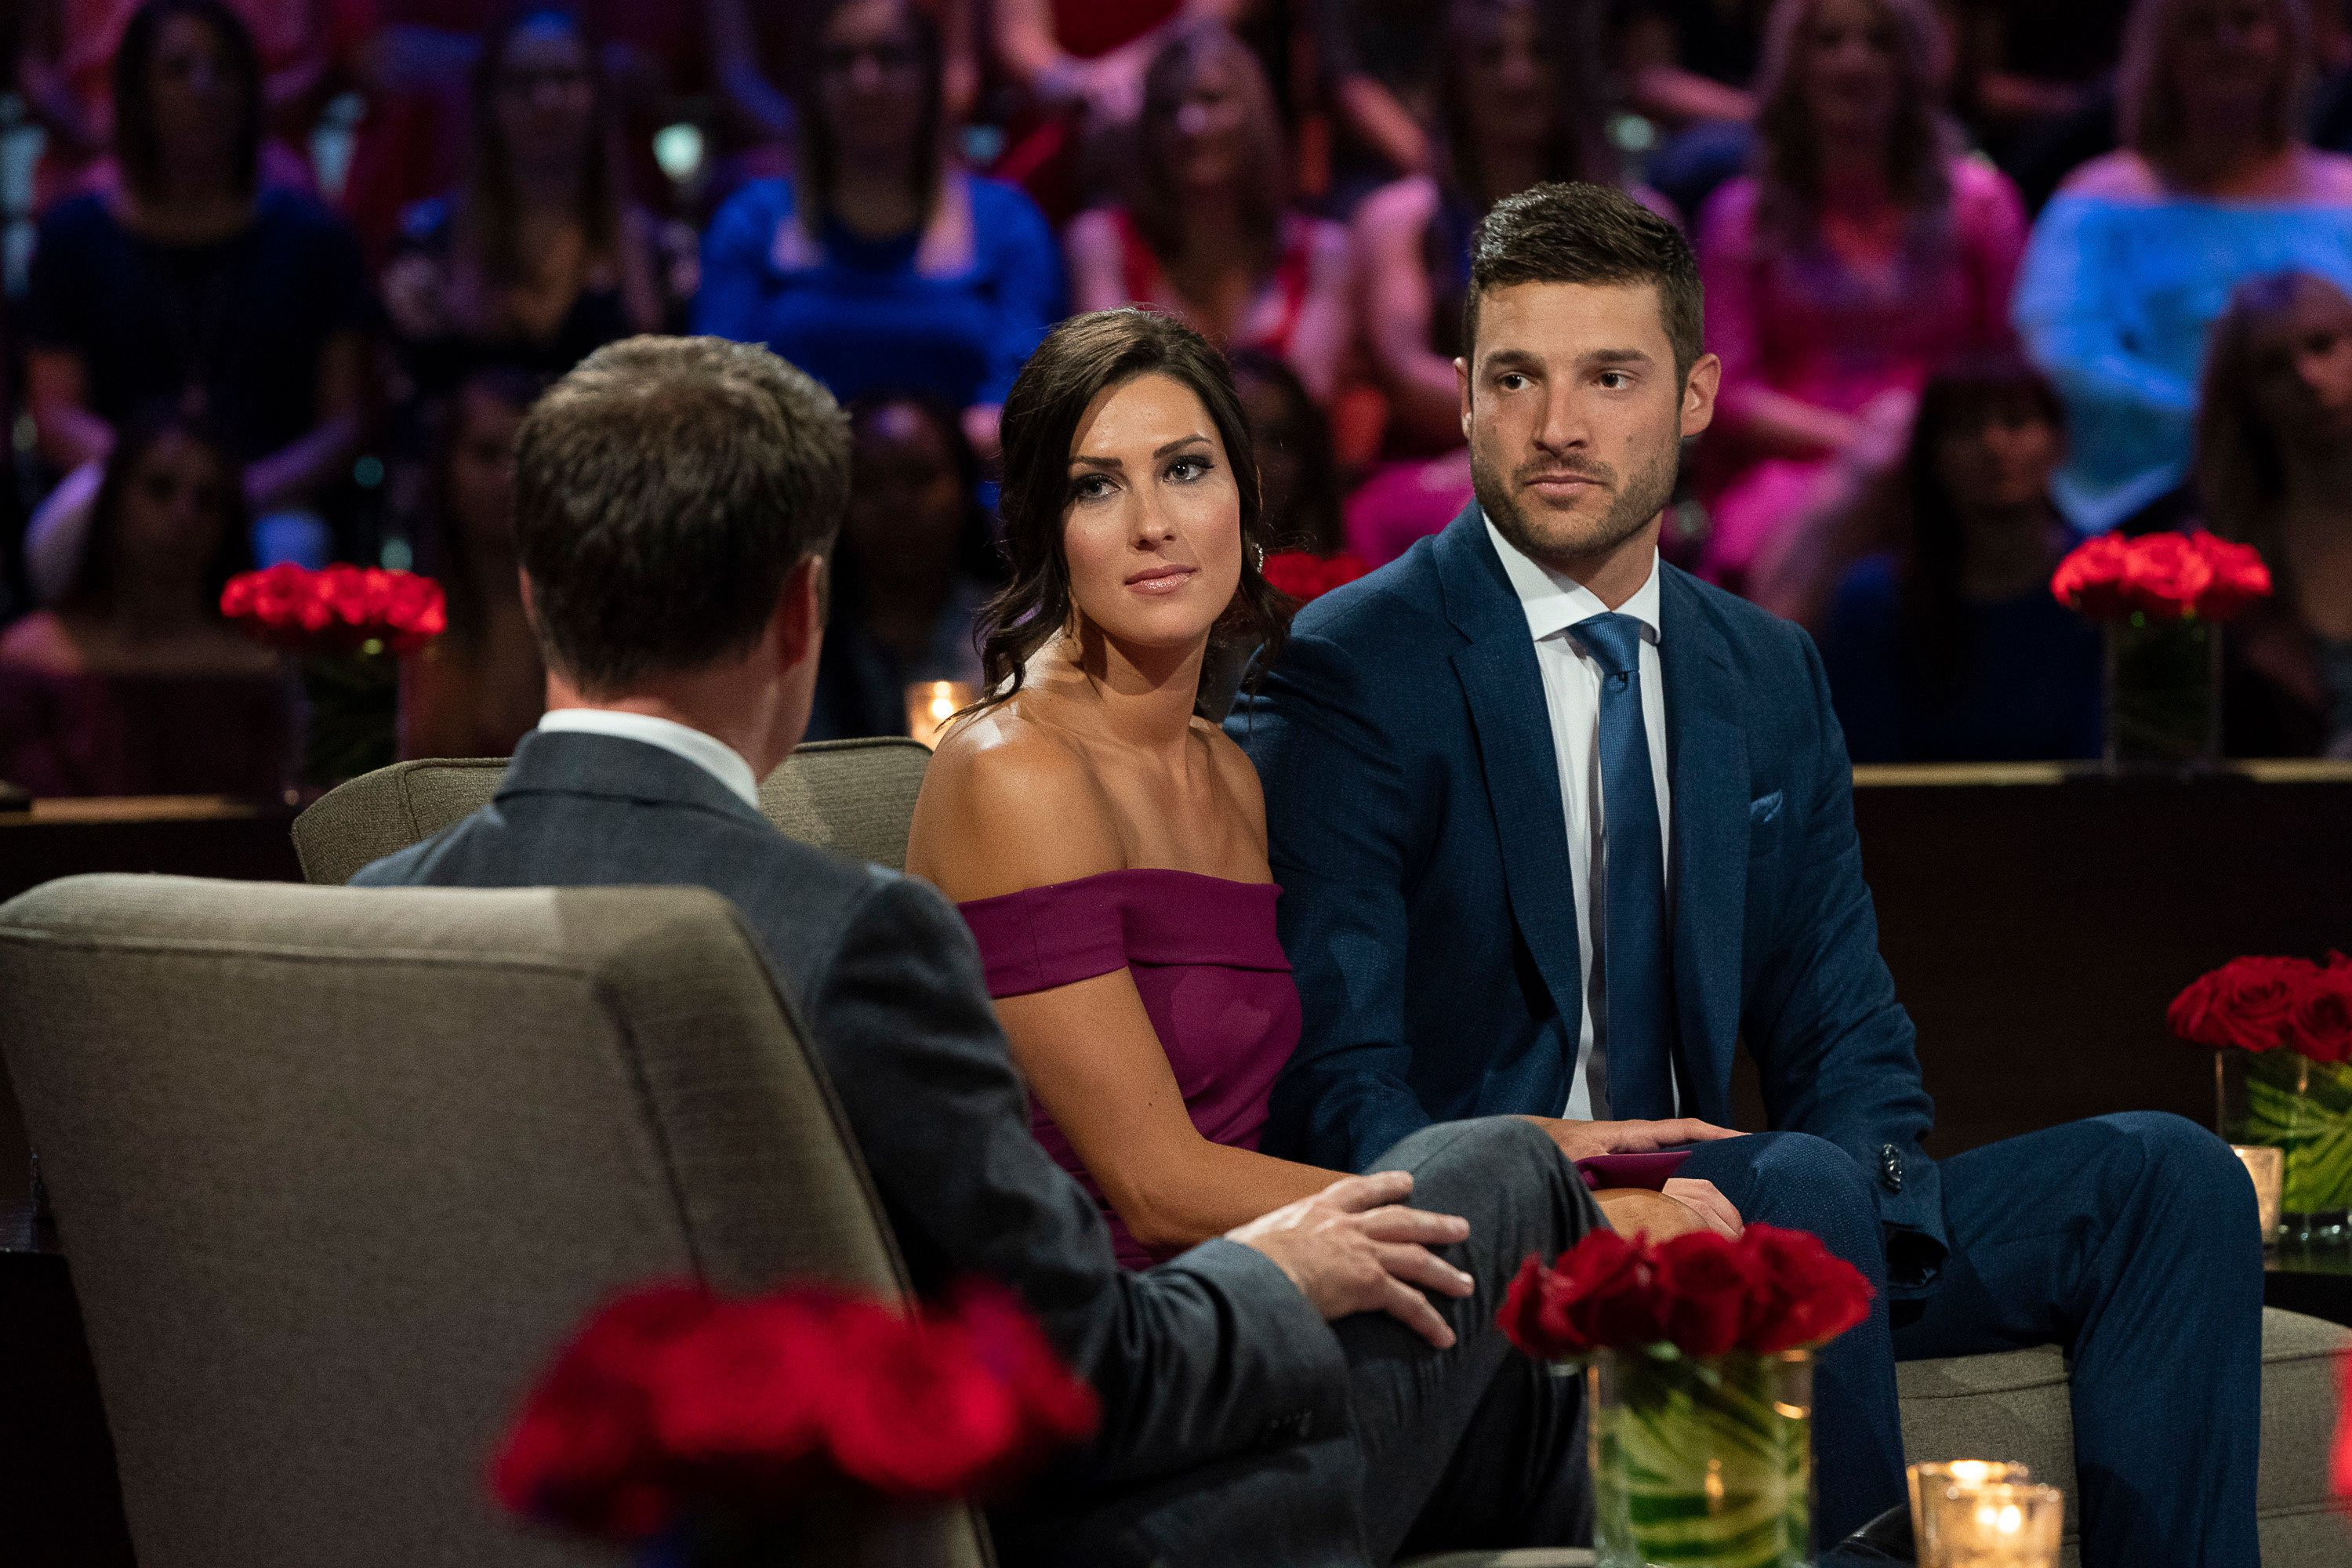 THE BACHELORETTE - 'Episode 1410' - Season Finale - After surviving shocking twists and turns, and a journey filled with laughter, tears, love and controversy, Becca heads to the Maldives with her final two bachelors: Blake and Garrett. She can envision a future with both men, but time is running out. Then later, Becca will be in studio with Blake and Garrett to discuss the stunning outcome and the heartwrenching decisions that changed all of their lives forever, on 'The Bachelorette: The Three-Hour Live Finale,' airing MONDAY, AUG. 6 (8:00-11:00 p.m. EDT), on The ABC Television Network. (Paul Hebert via Getty Images) BECCA KUFRIN, GARRETT